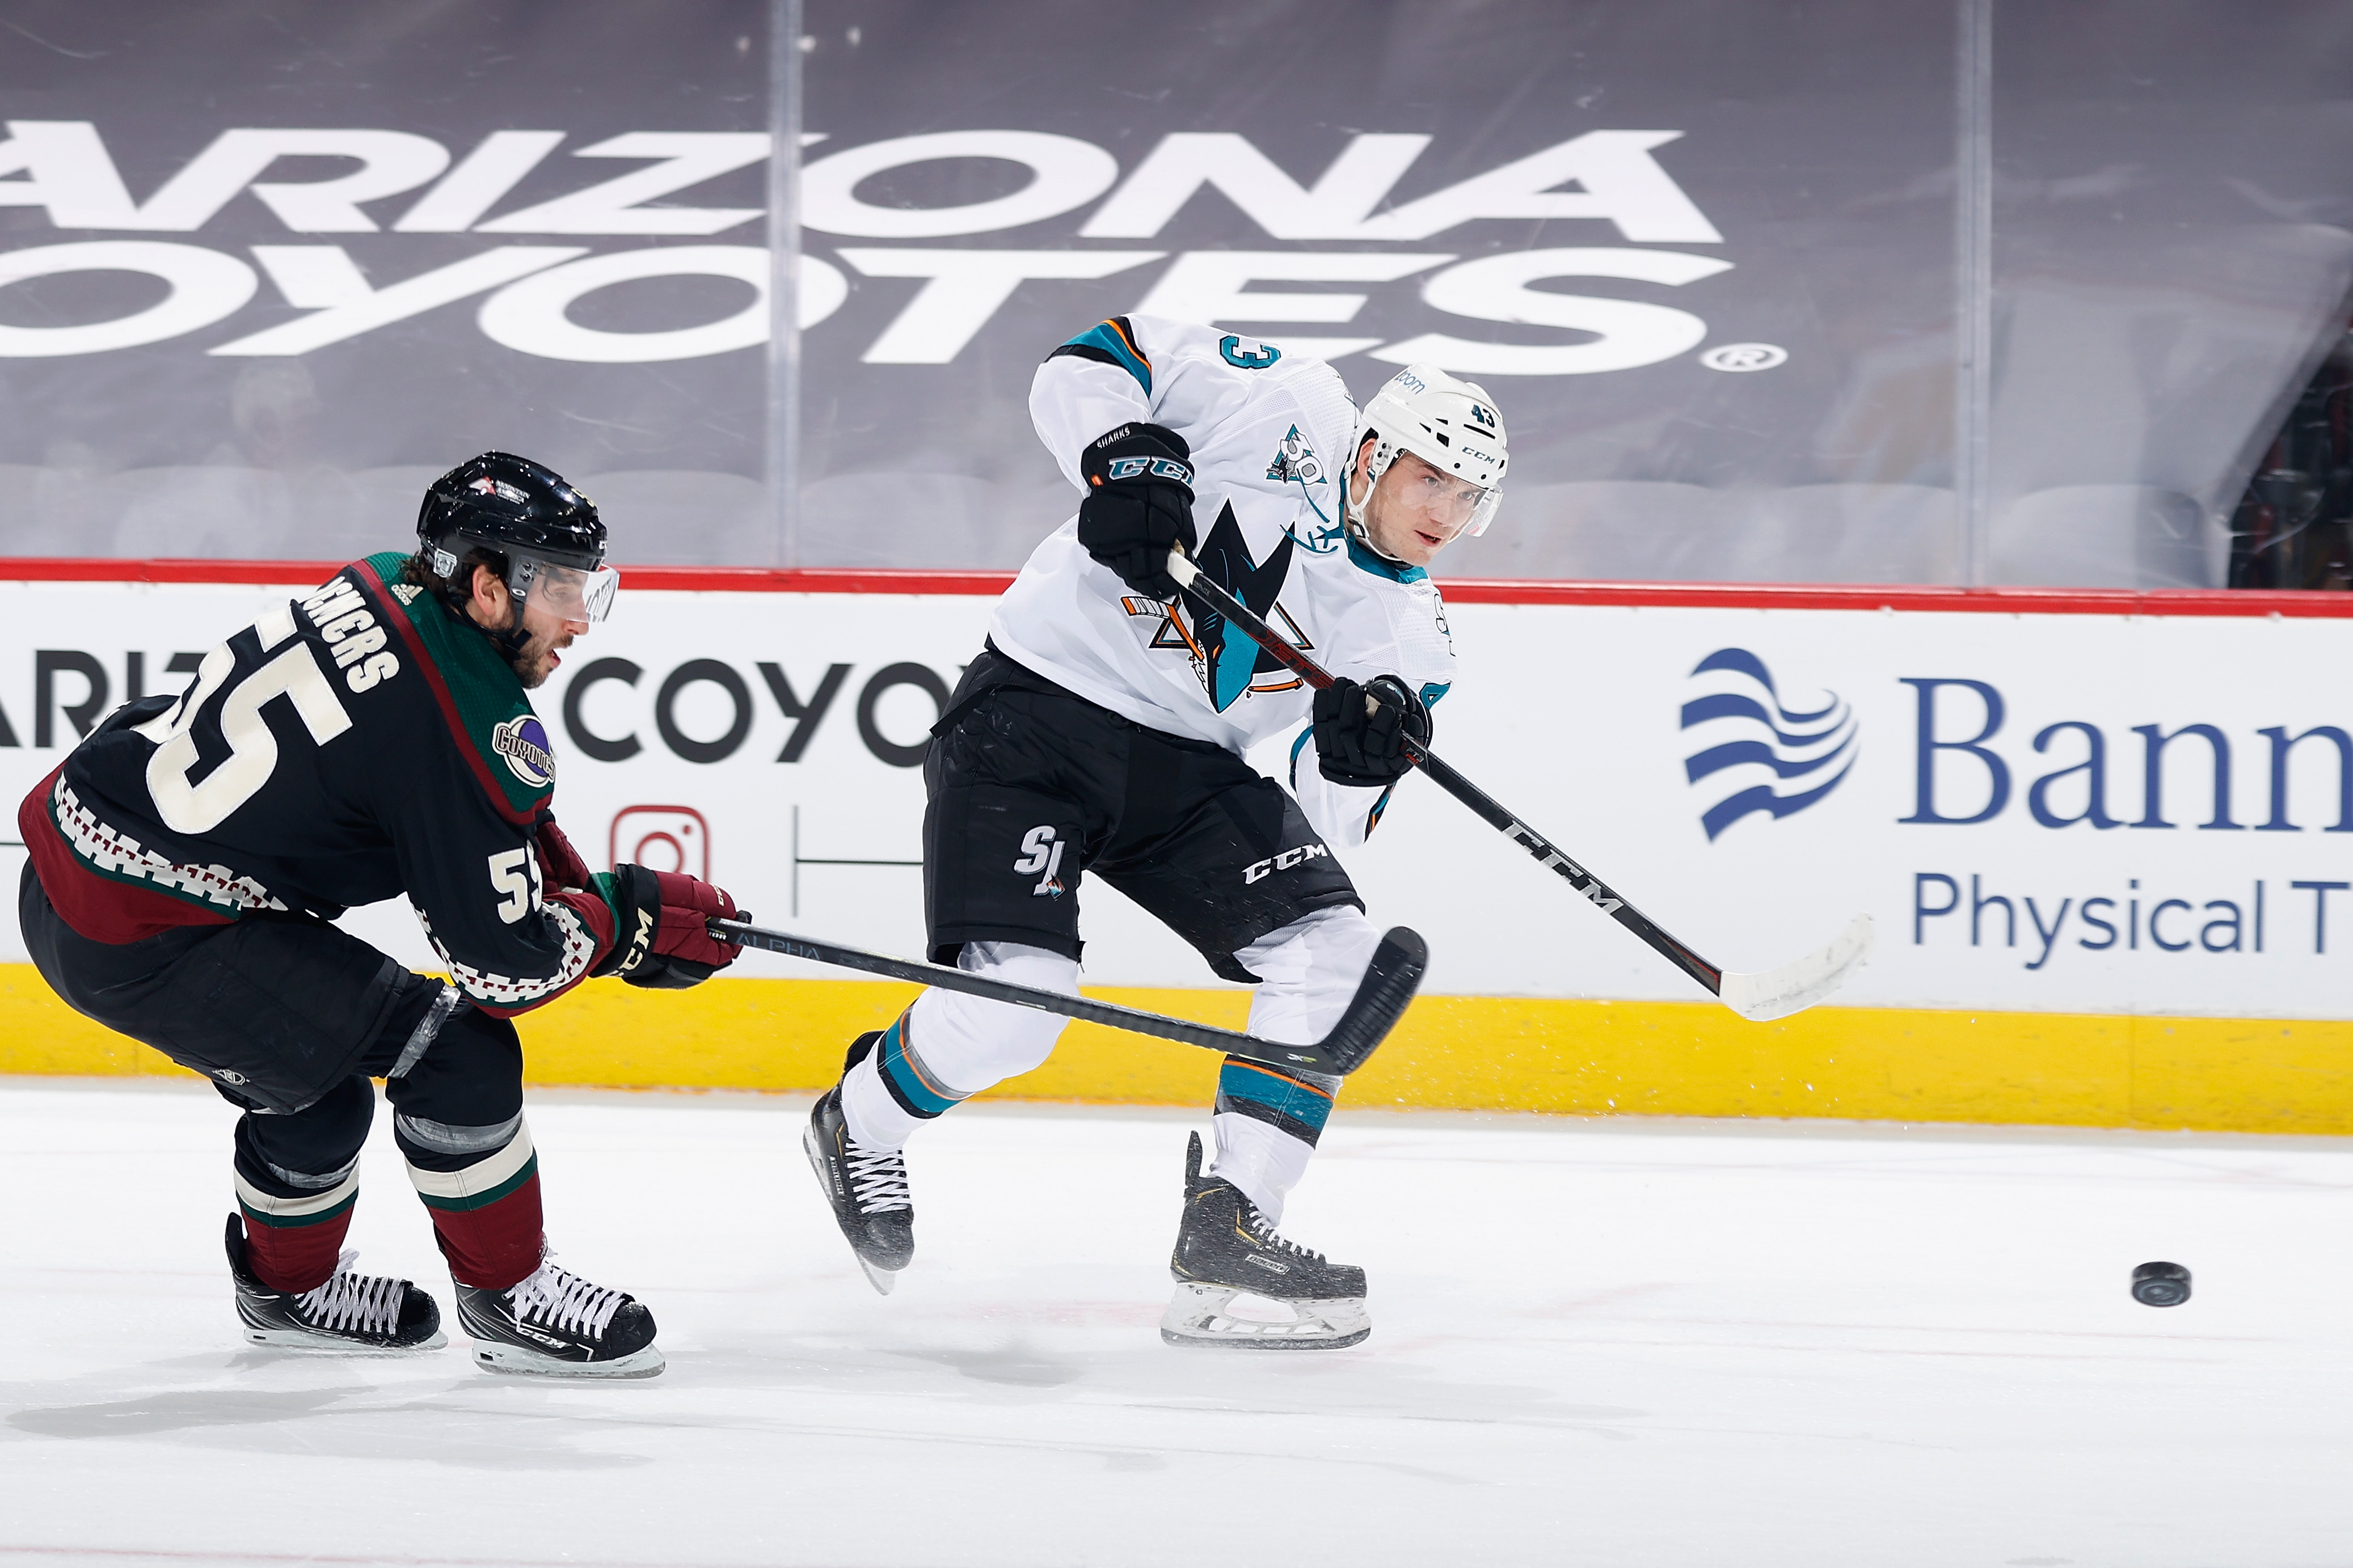 John Leonard #43 of the San Jose Sharks shoots the puck ahead of Jason Demers #55 of the Arizona Coyotes during the first period of the NHL game at Gila River Arena on January 14, 2021 in Glendale, Arizona.